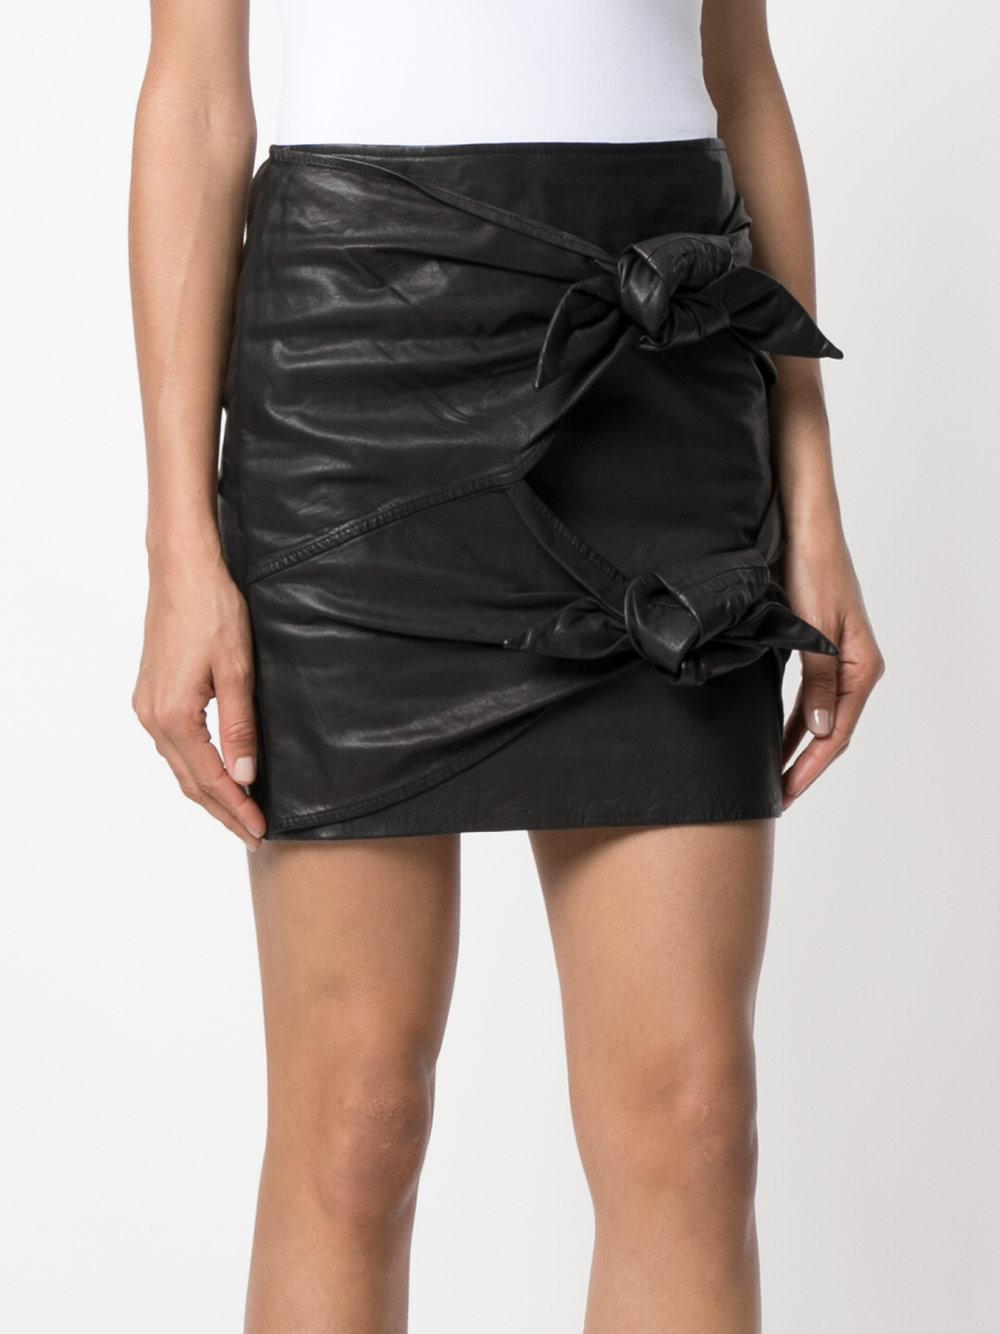 Free Shipping Comfortable knotted mini skirt - Black Isabel Marant Best Place For Sale From China Free Shipping Low Price CusJc